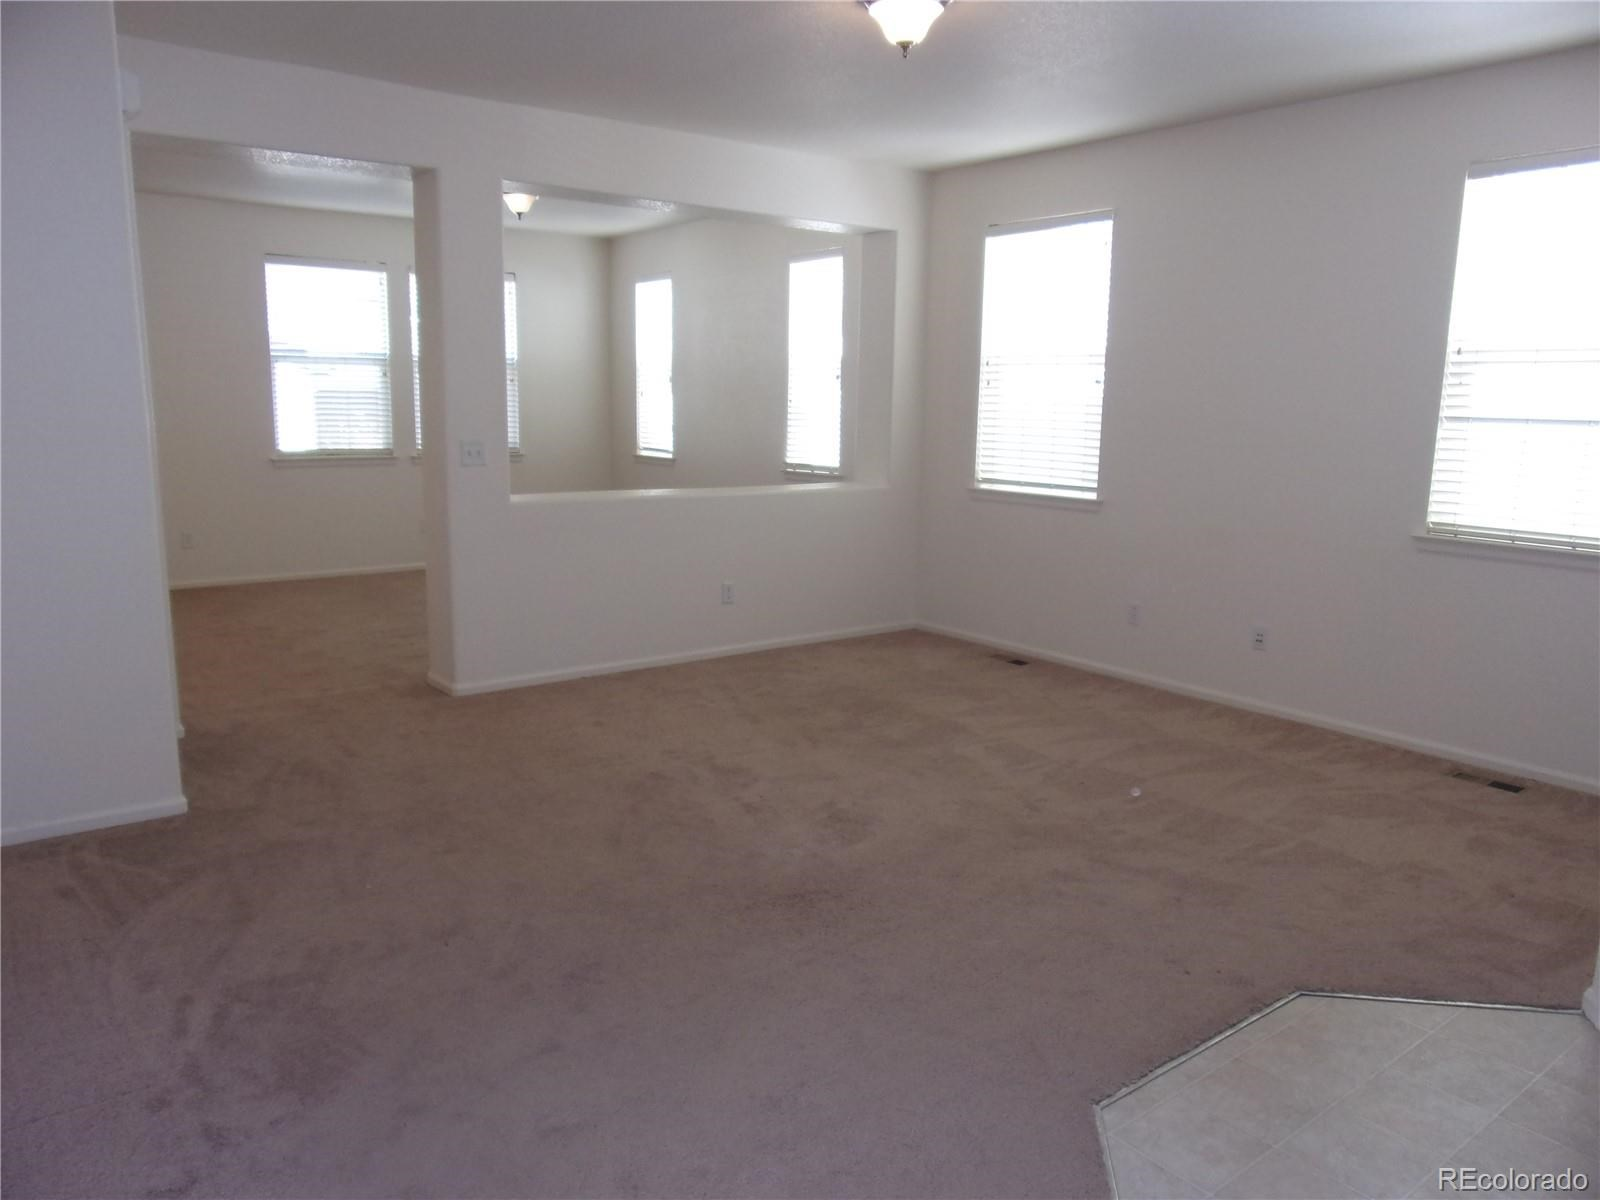 MLS# 3905855 - 8269 E 28th Place, Denver, CO 80238